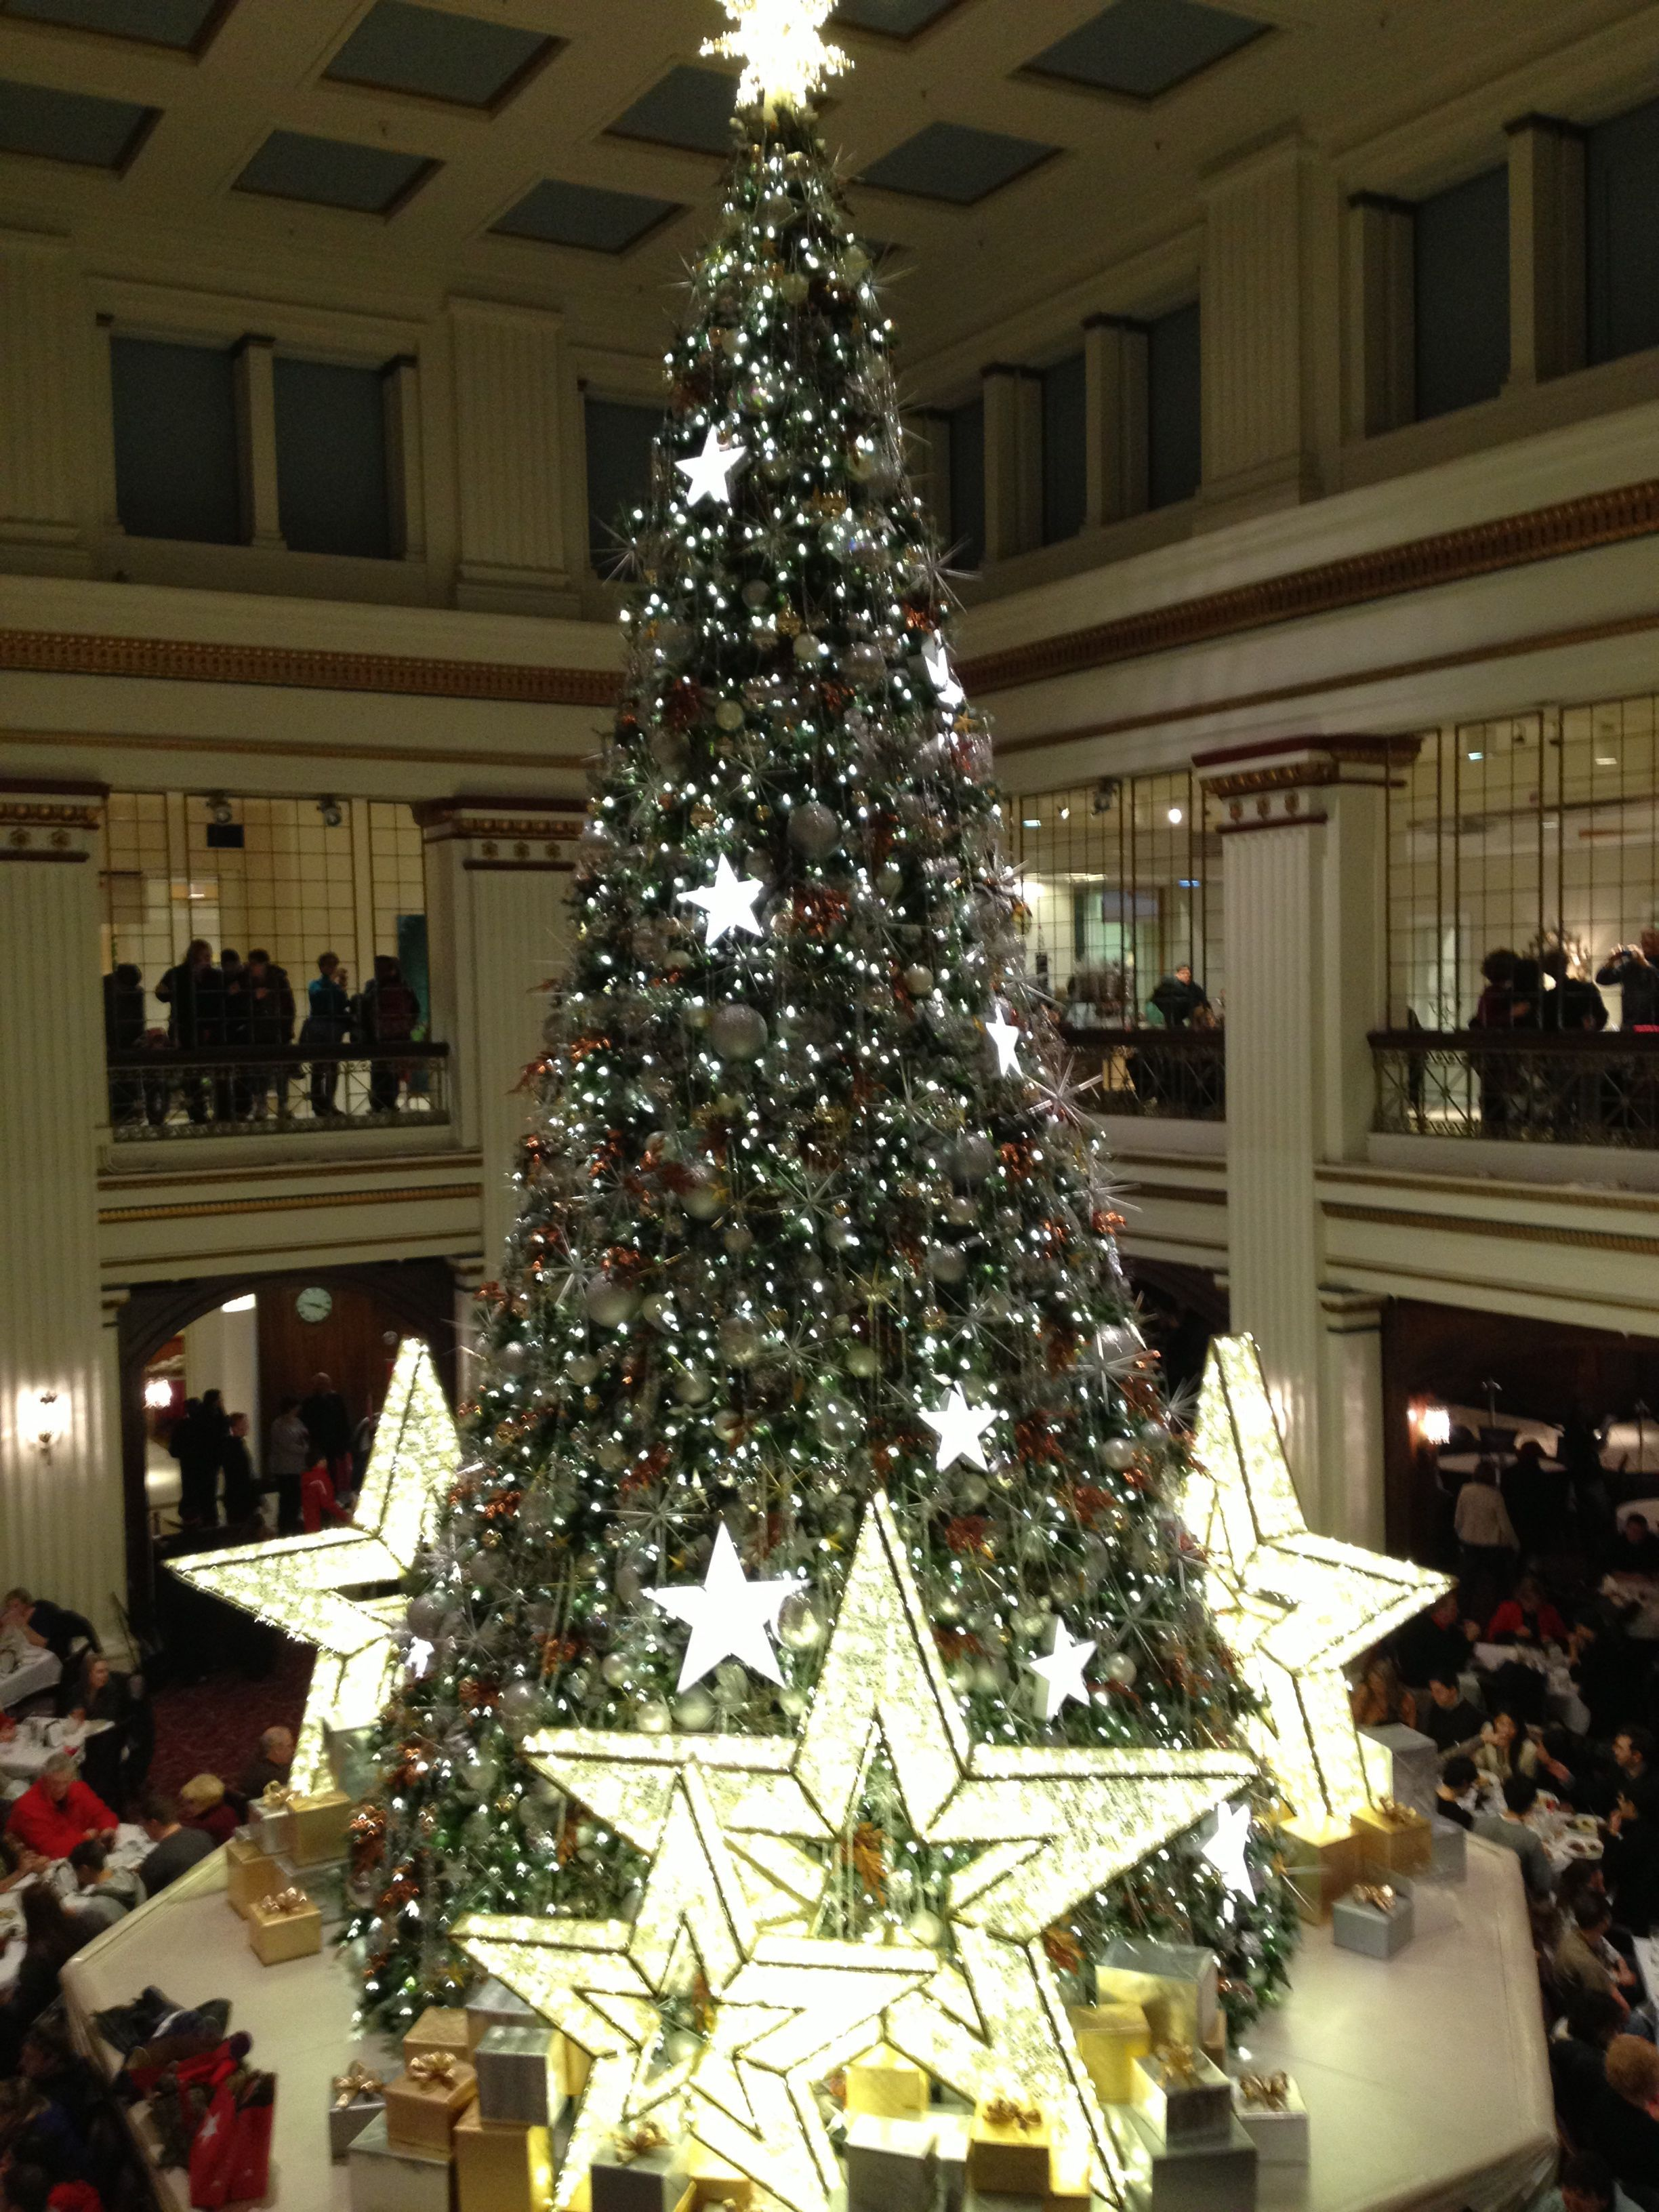 Macys Christmas Tree.Pin On Chicago